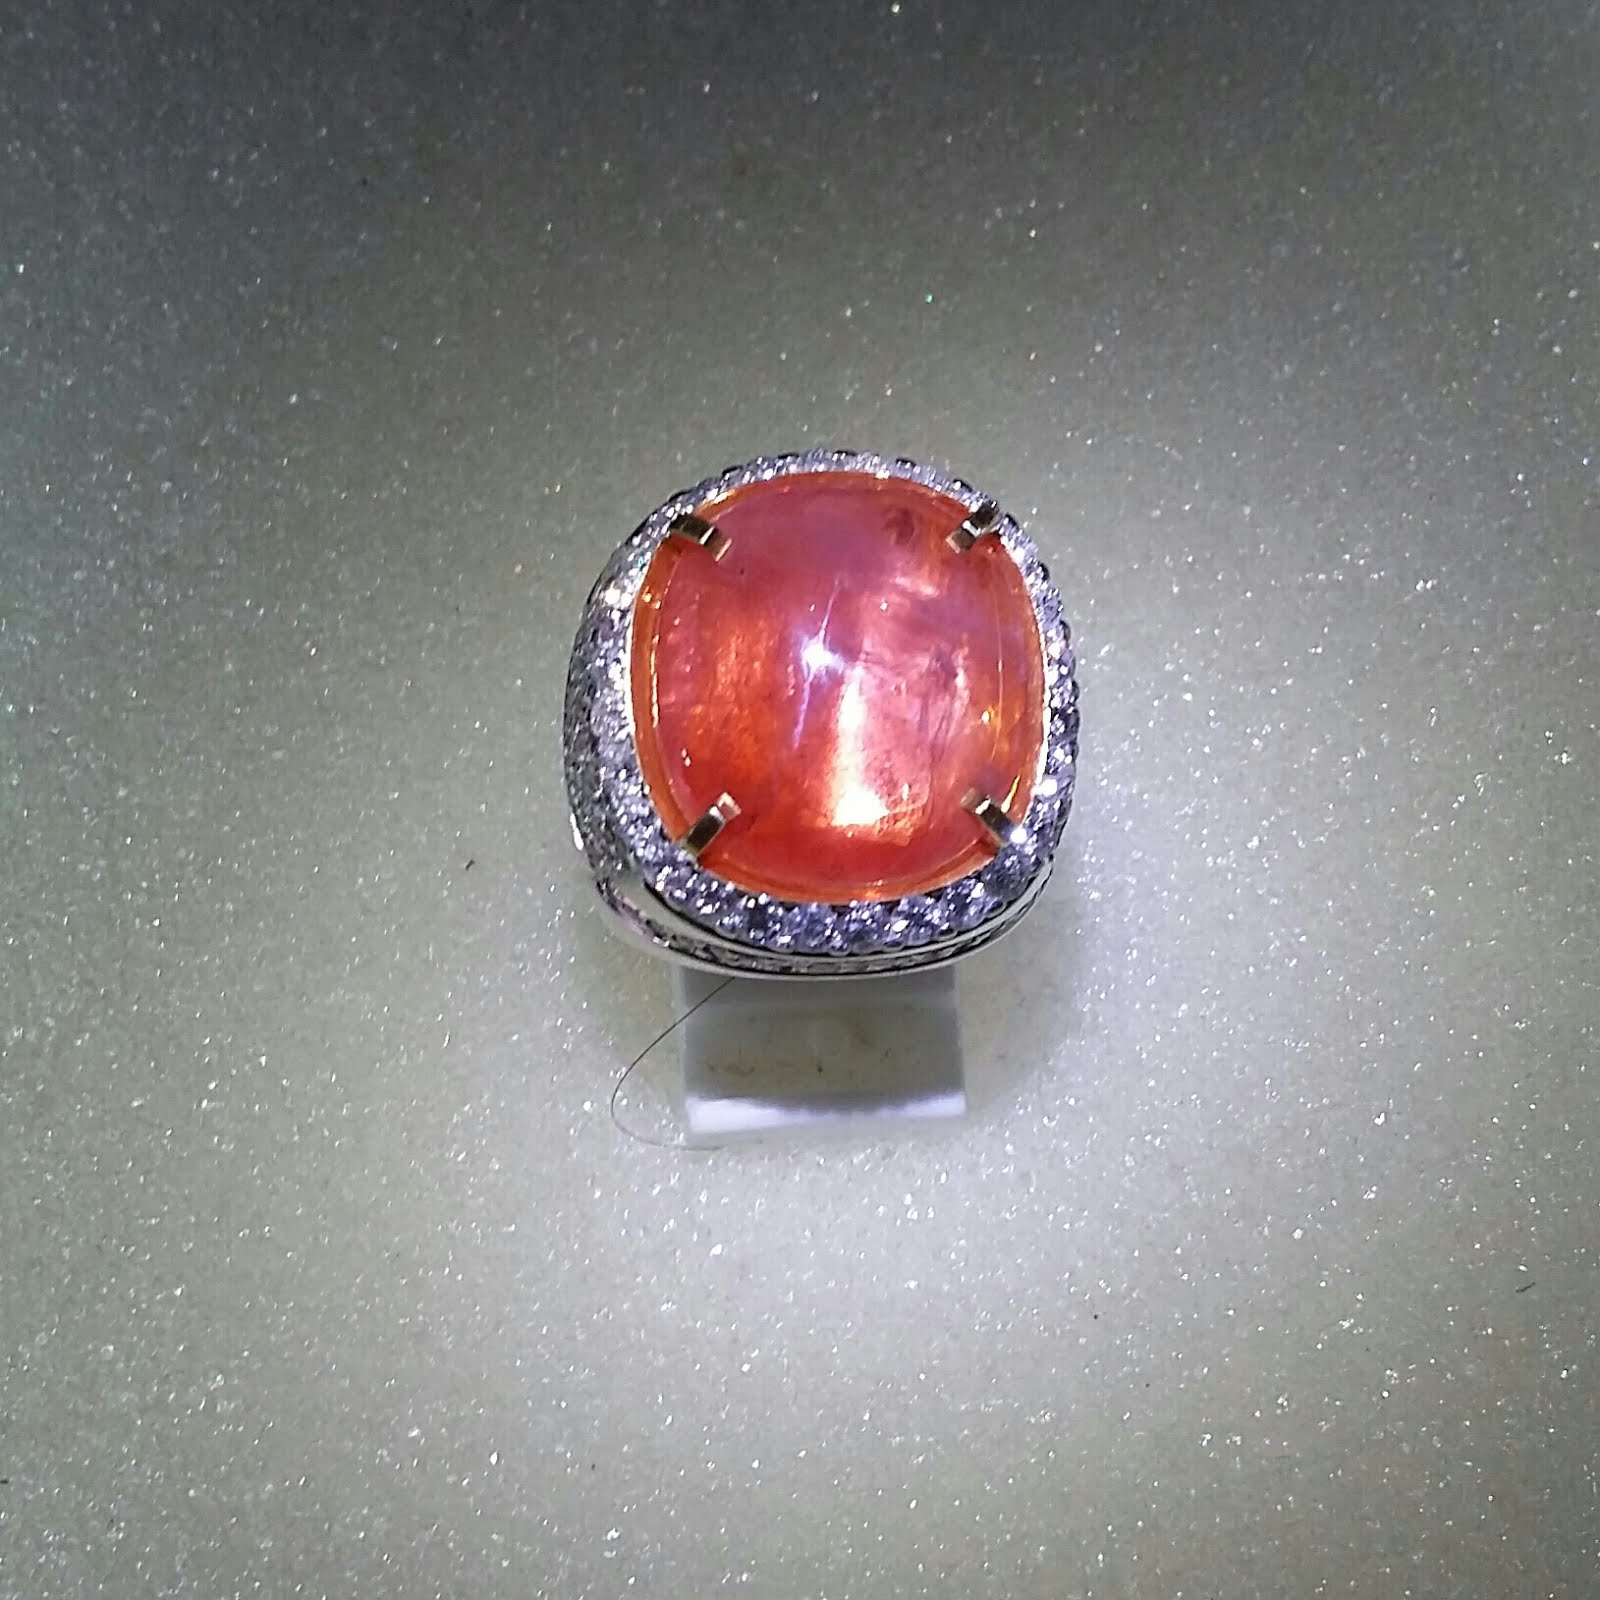 deco bling gia art no ring heat pin sapphire padparadscha pad